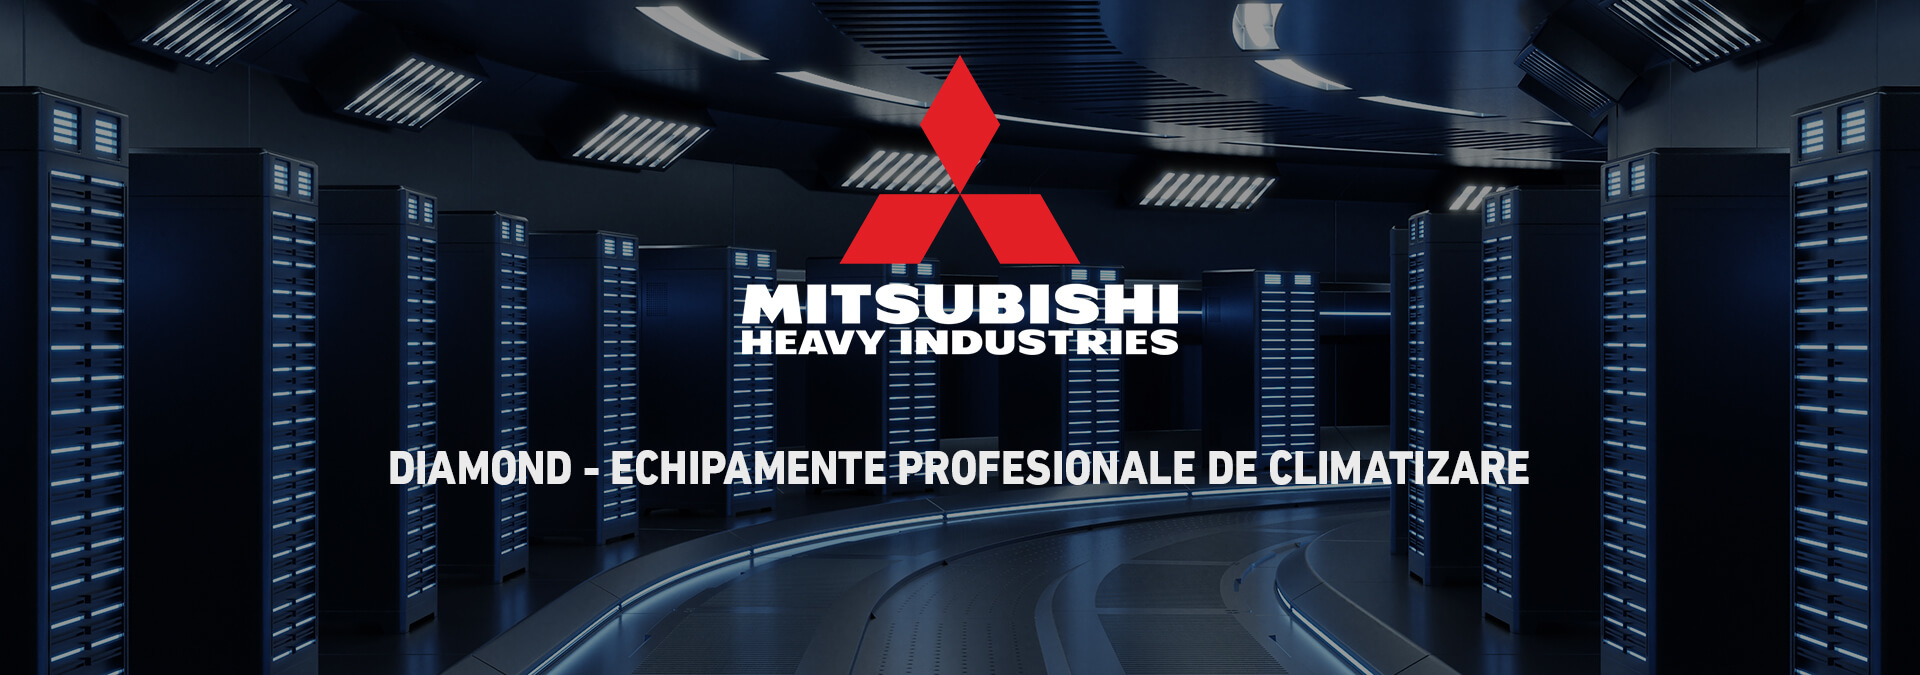 mitsubishi-heavy-industries-gama-diamond